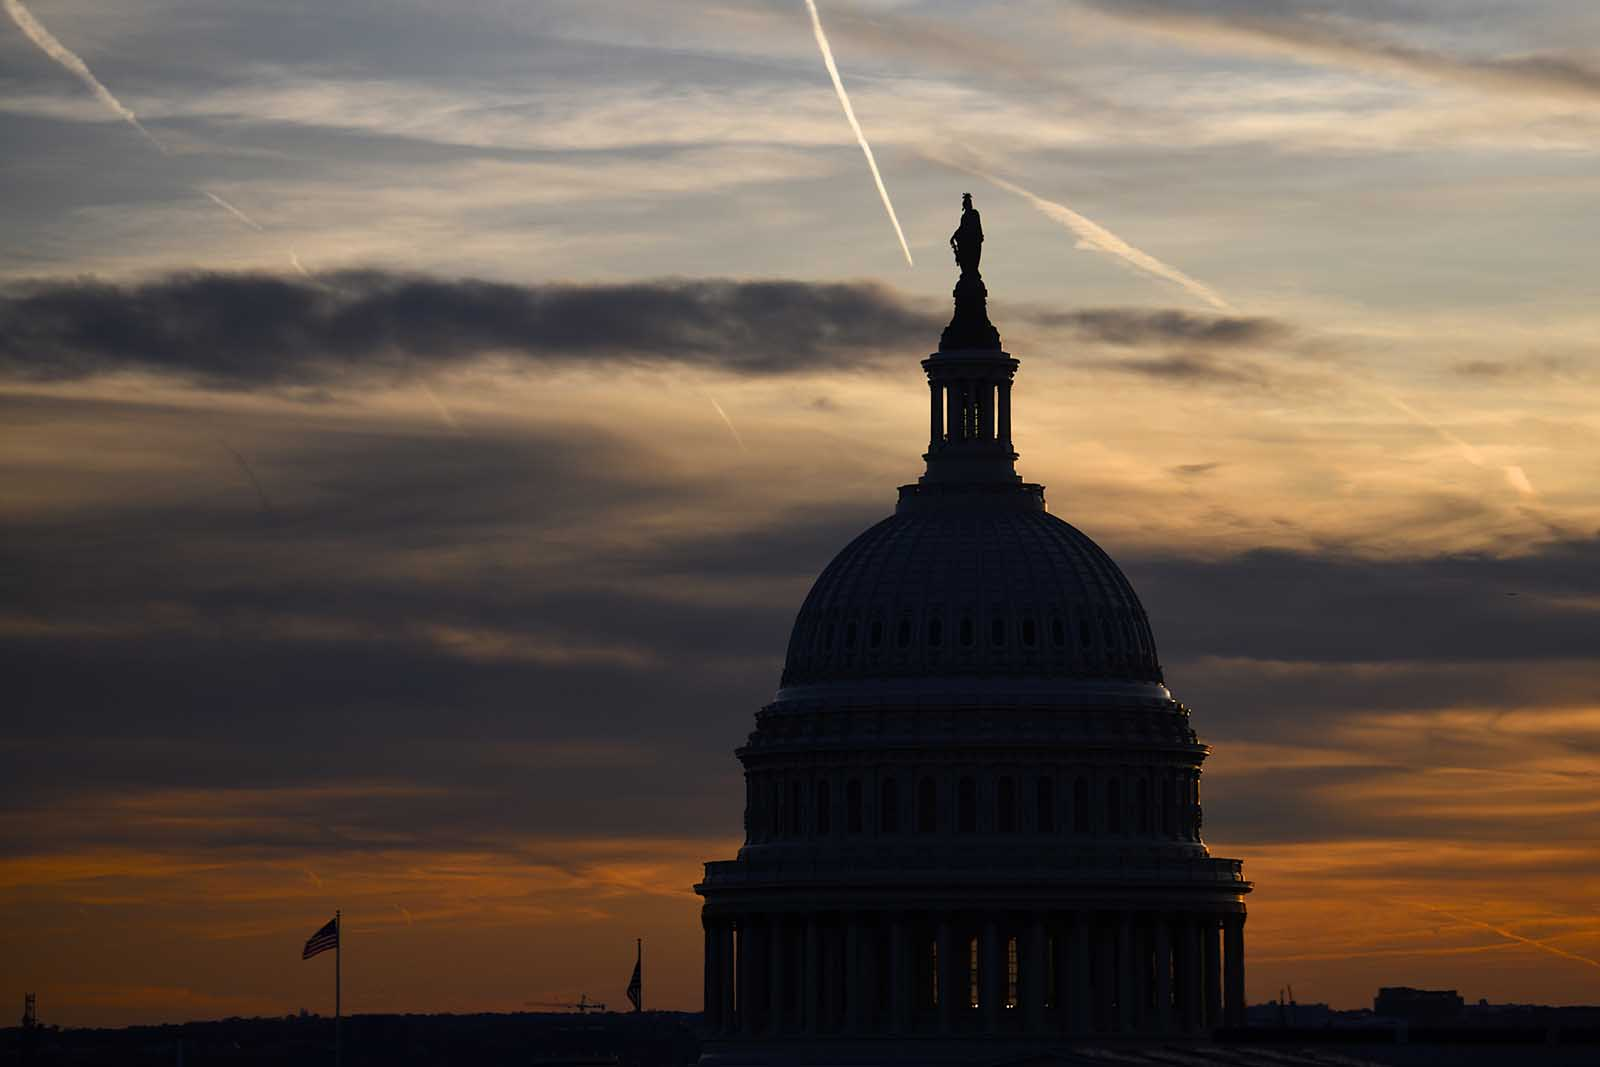 Streaks in the sky form at sunset behind the U.S. Capitol Building on November 13, 2019 in Washington.